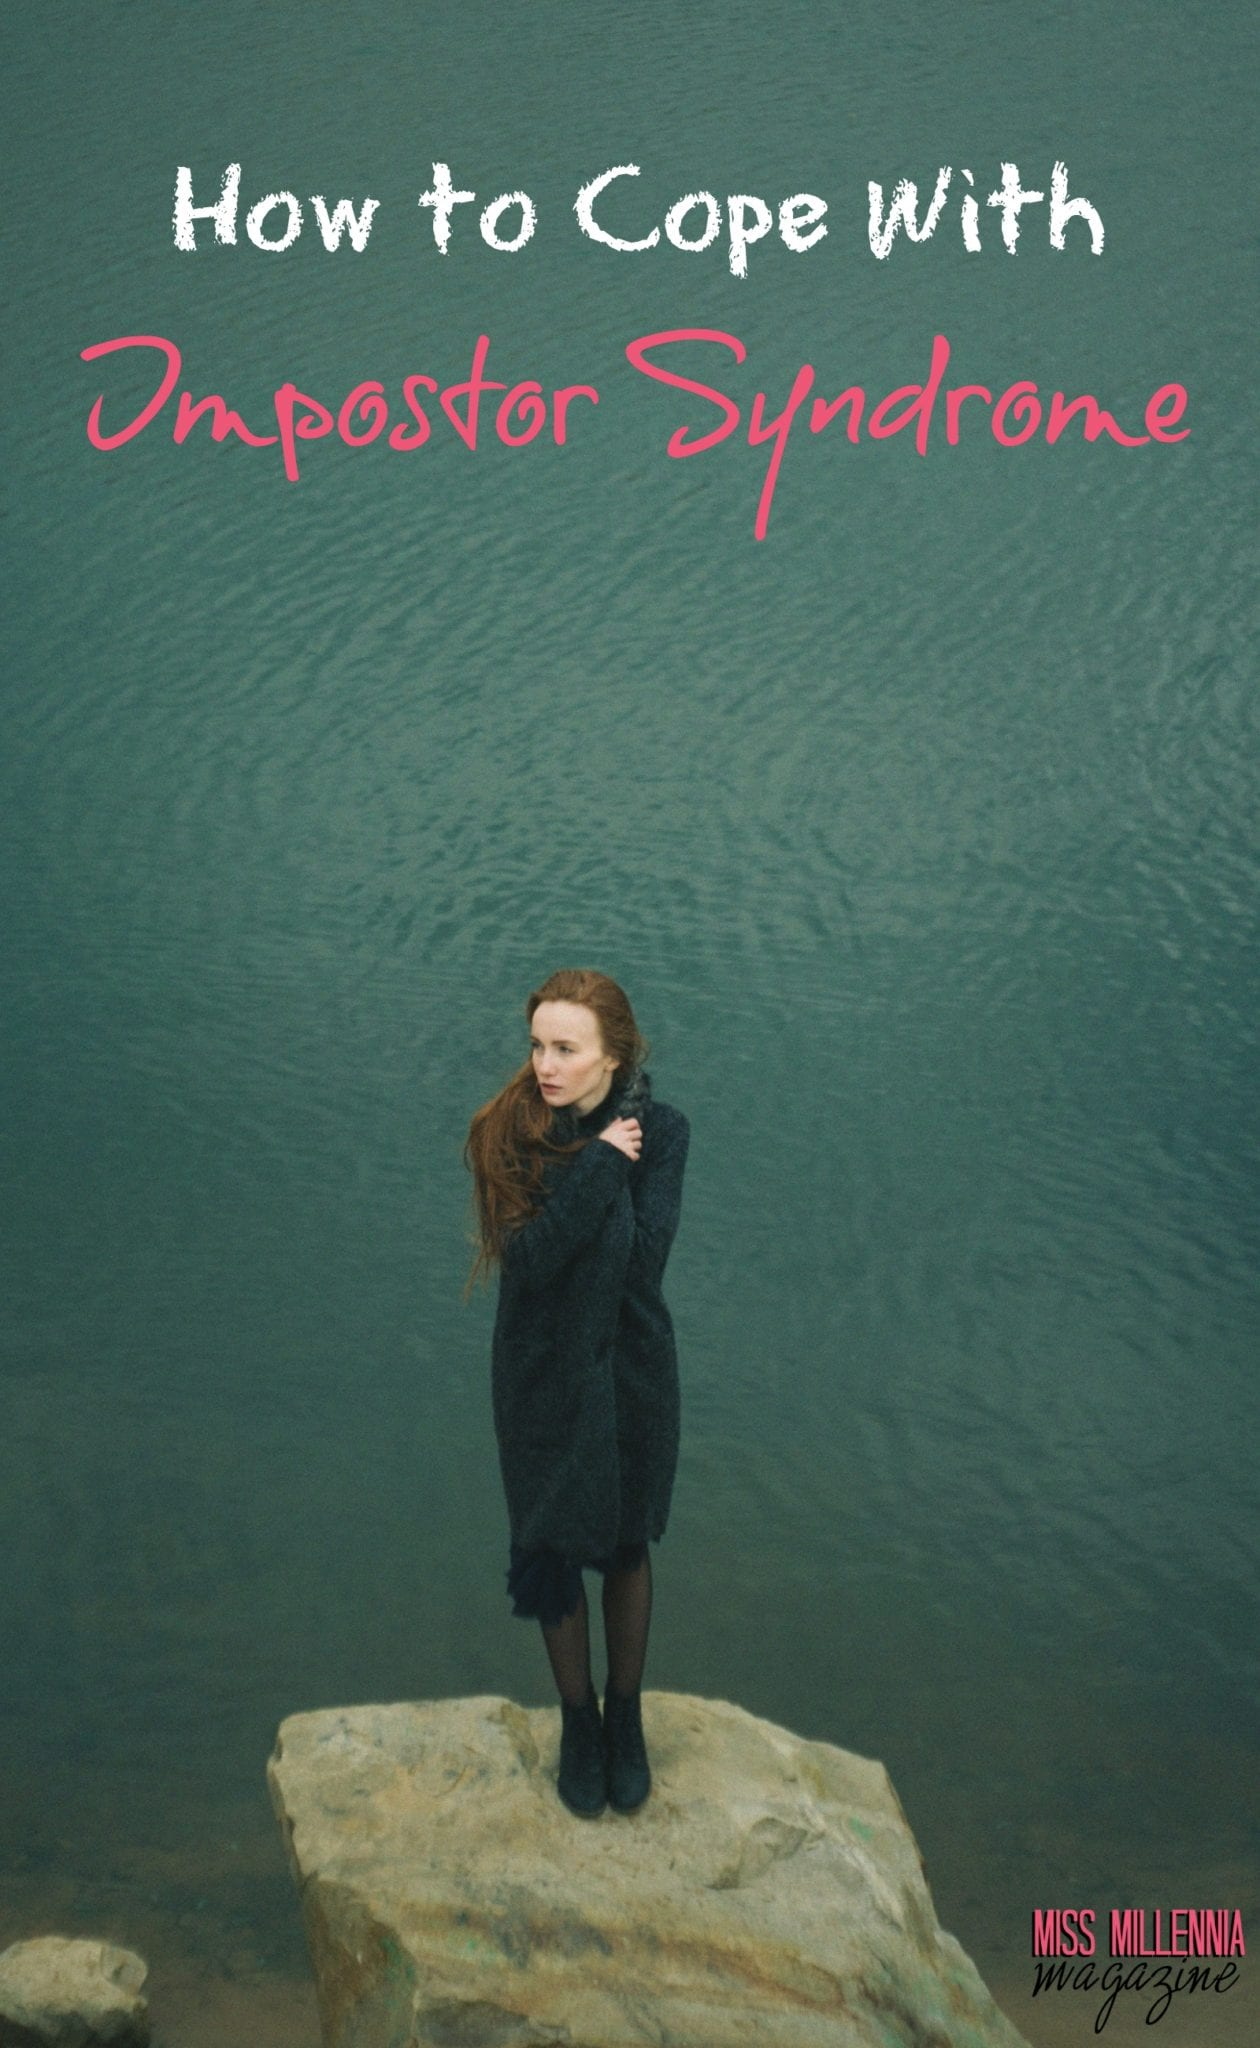 How to Cope With Impostor Syndrome